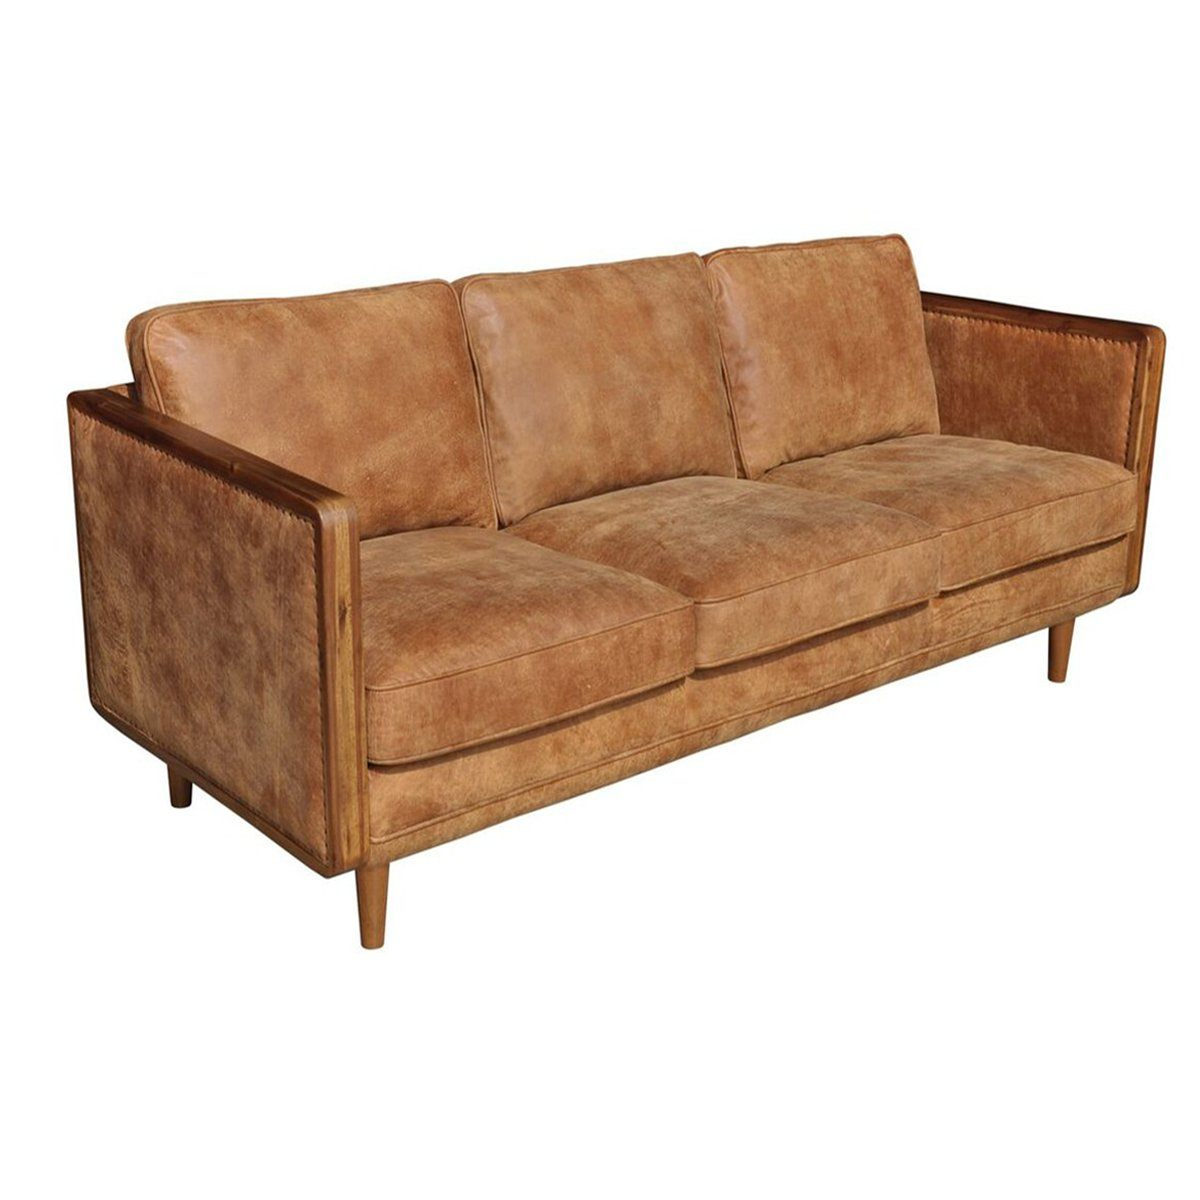 Mandalay Custom Sofa, Made in Canada 🇨🇦 | Calgary's Furniture Store